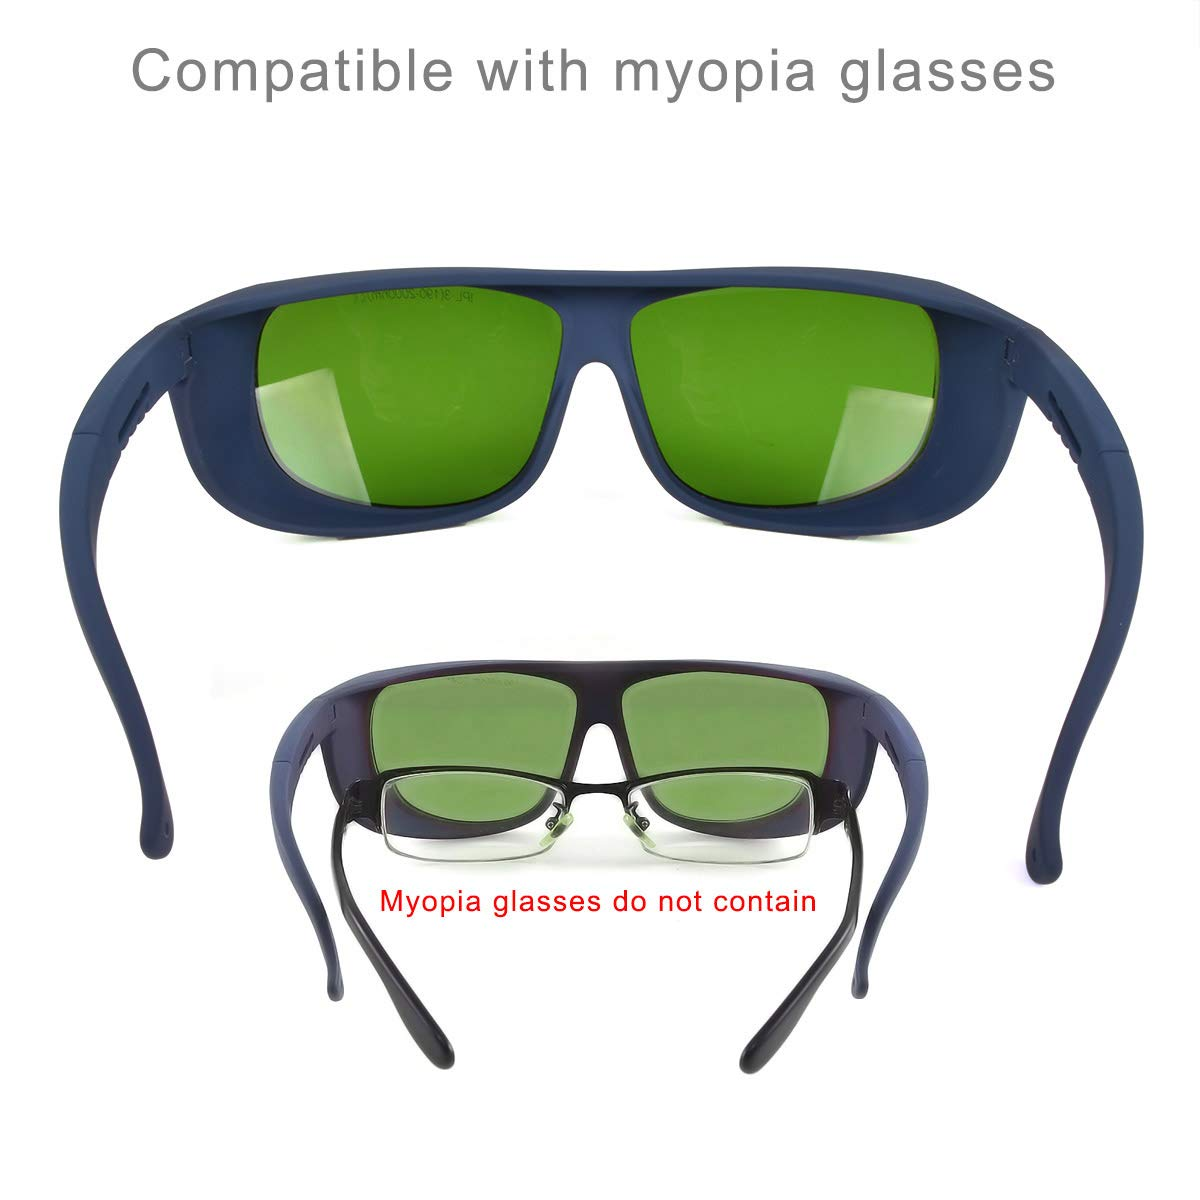 190nm-2000nm Wavelength IPL Laser Safety Glasses for Medical Eye Protection/Laser Cosmetology Operator Eyewear Compatible with Myopic Glasses (Black) by FreeMascot (Image #4)